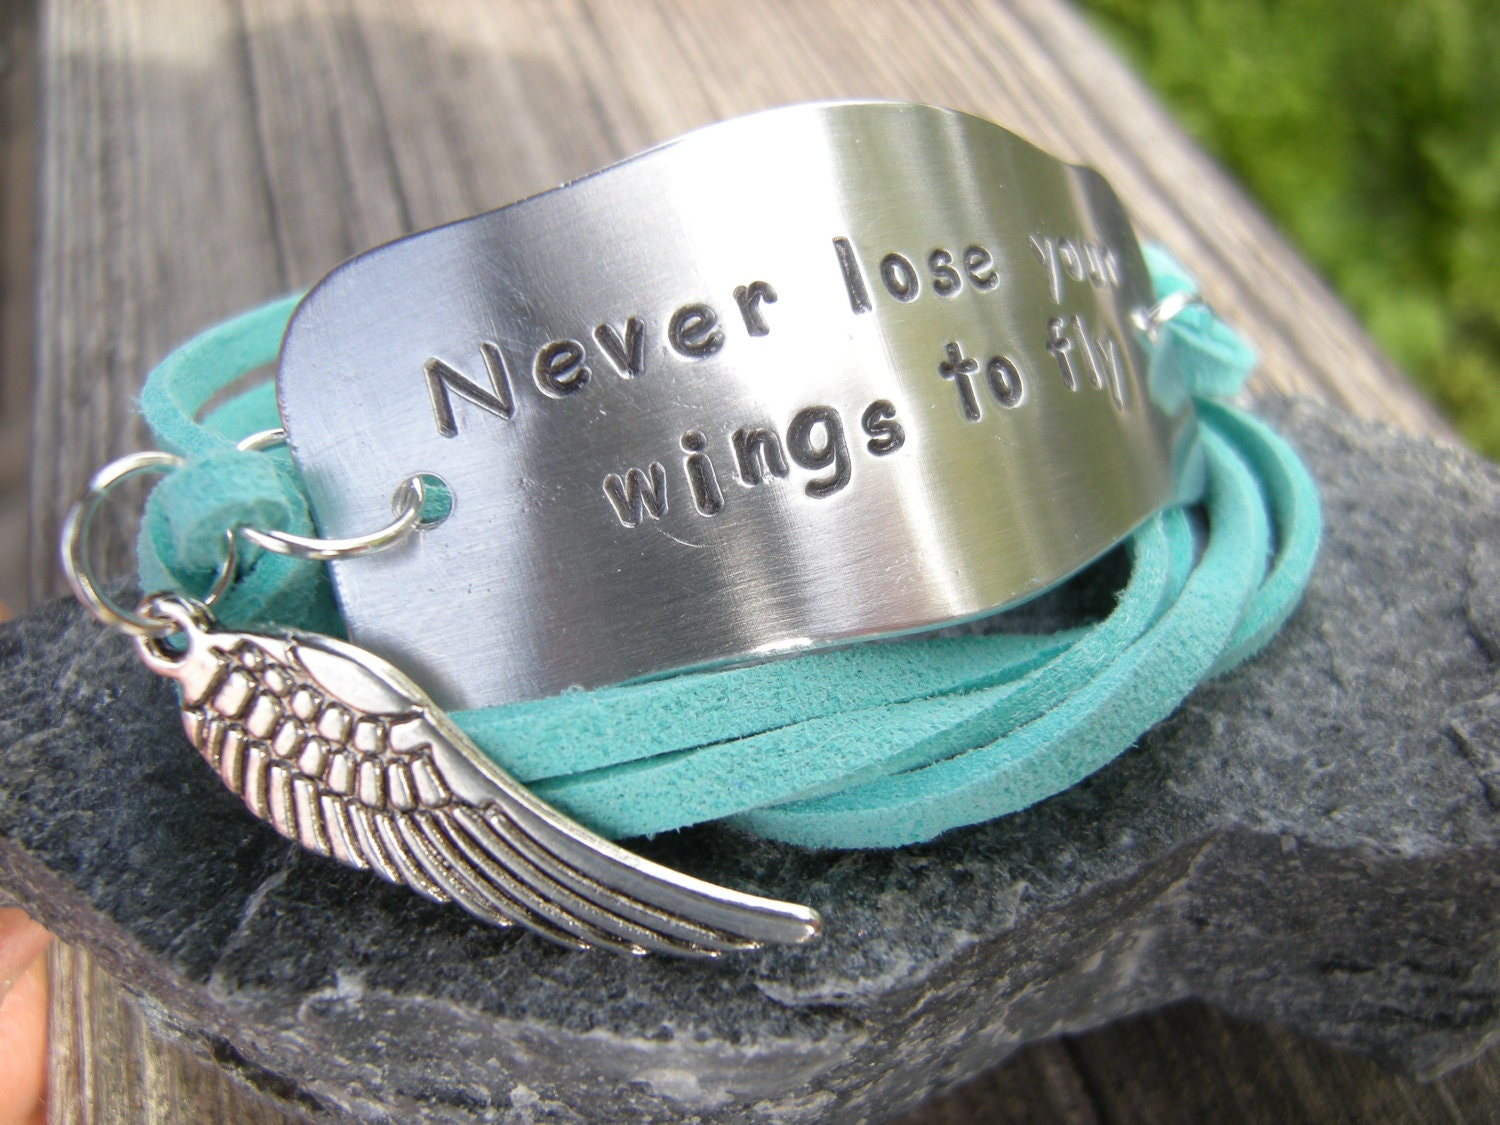 cuff chase dreams graduation your message stude metal gift student products inspirational bracelet motivation